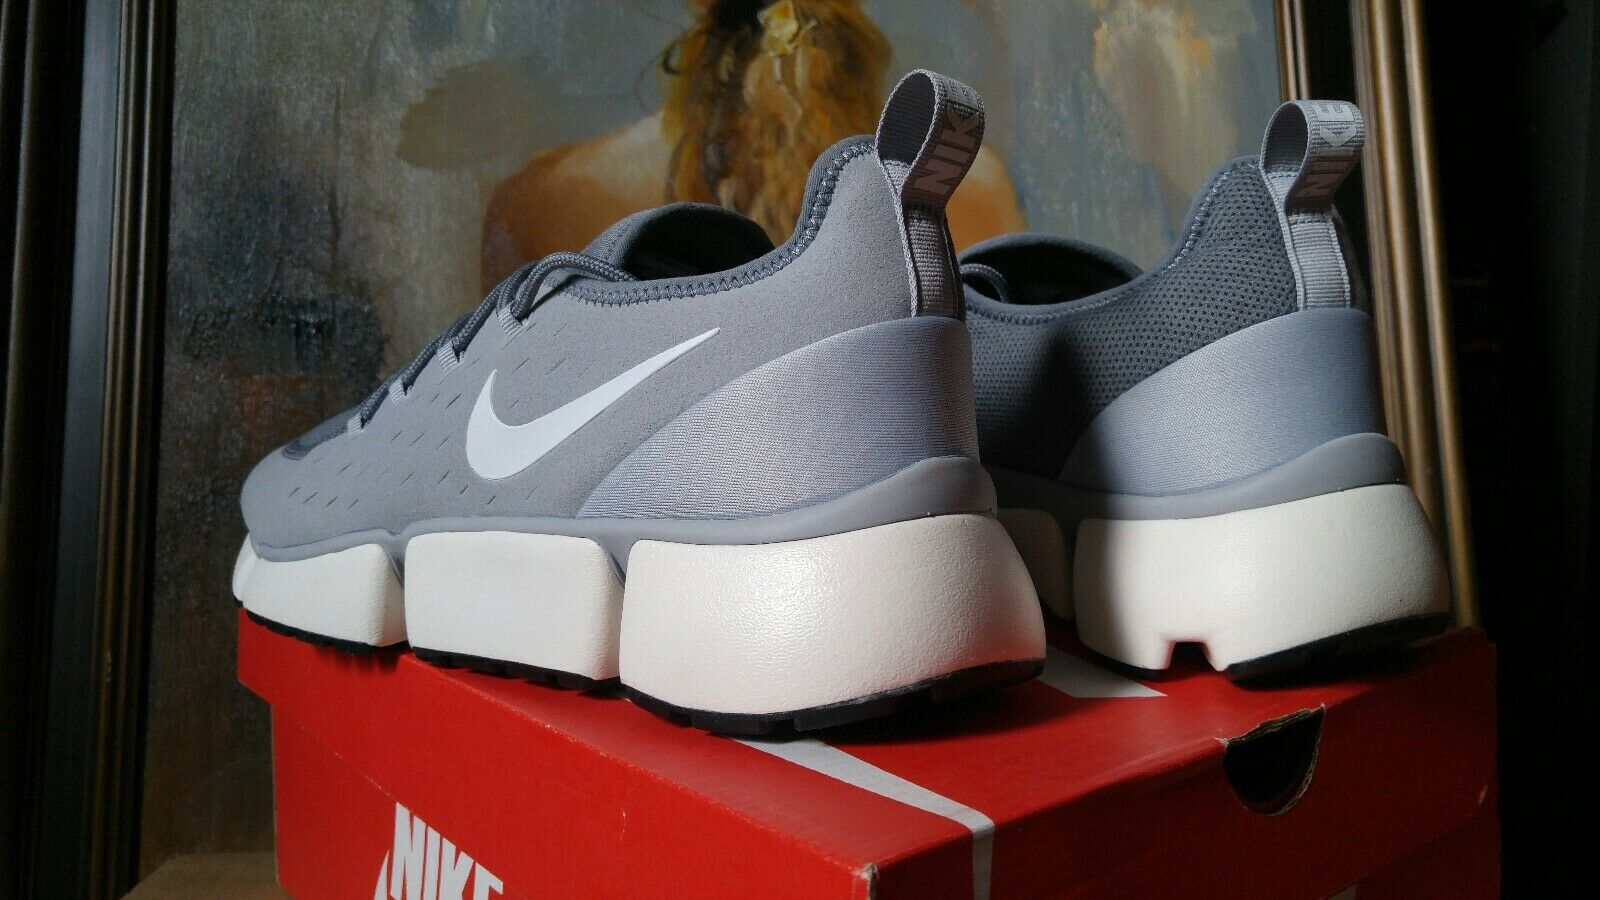 Nike Pocket Fly Fly Fly DM Size 11.5 Wolf Grey White Cool Sail AJ9520 005 d4dfb2